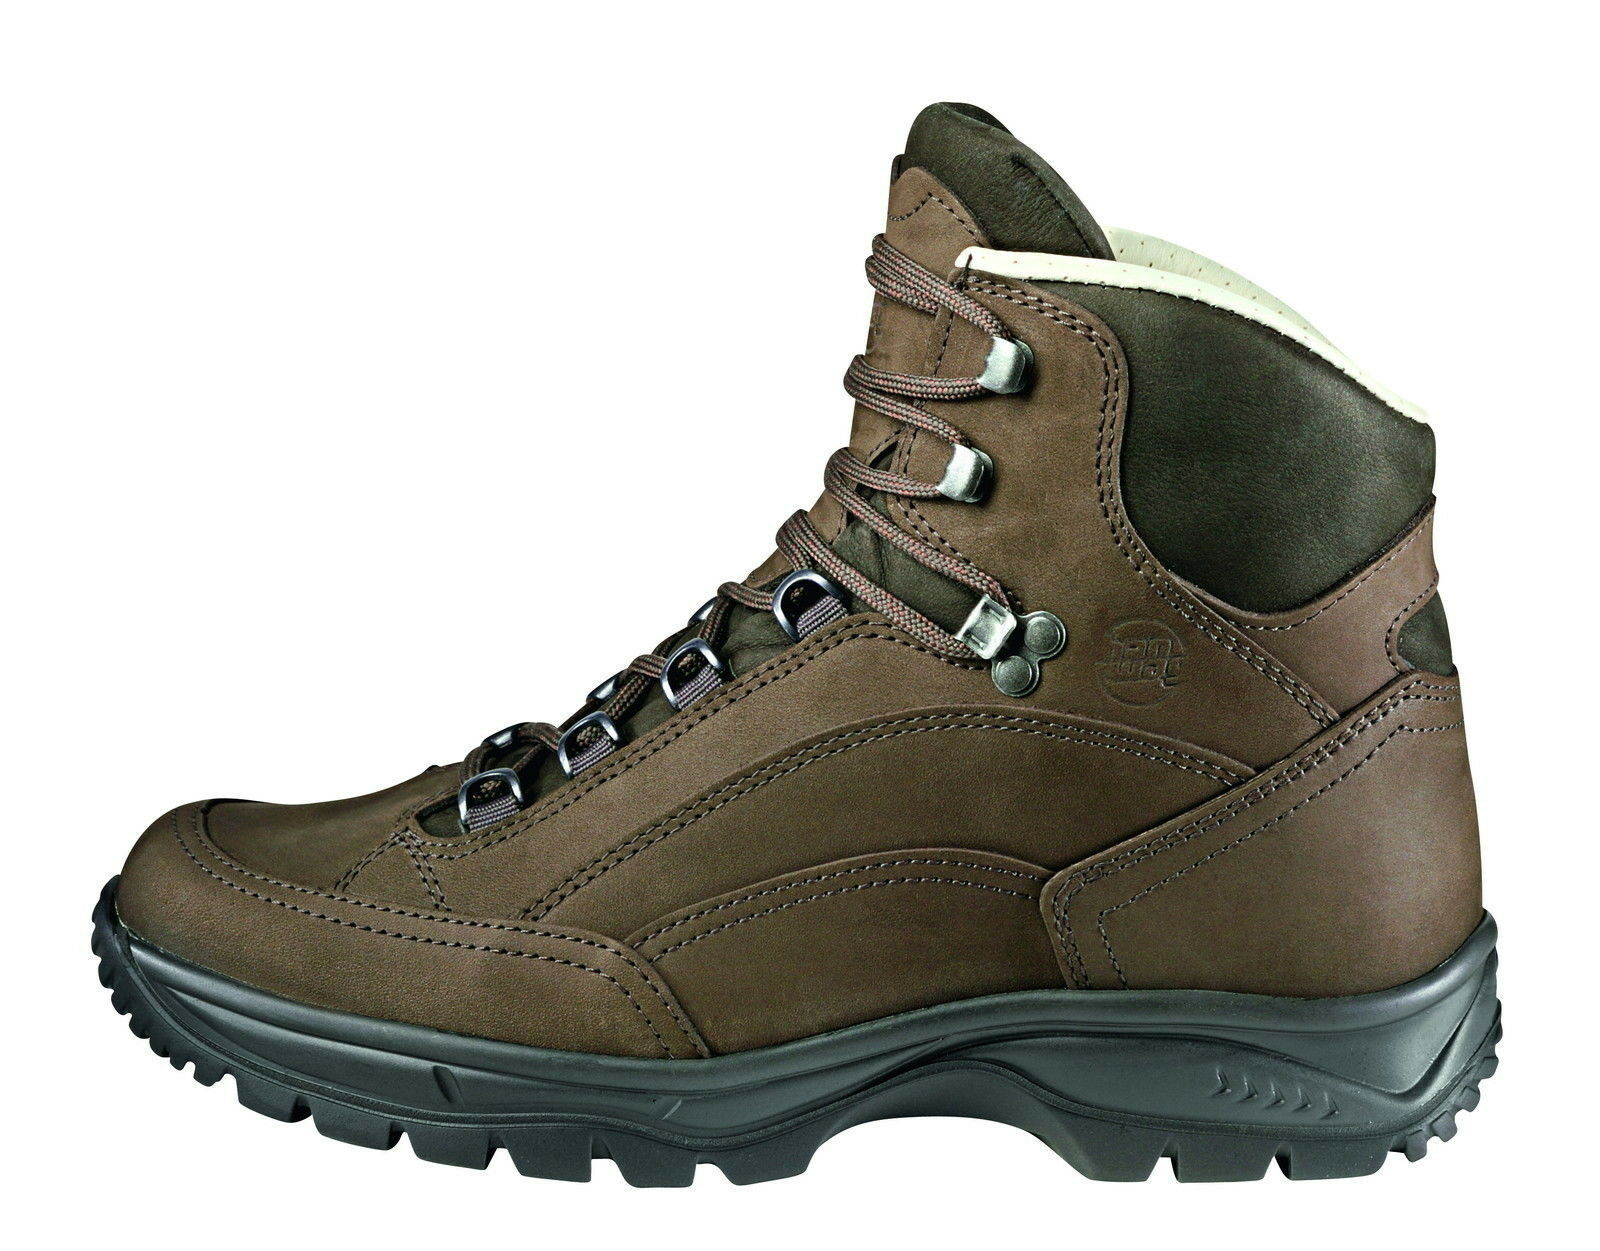 Hanwag Mountain shoes Canyon Men II, Leather Earth Size 10,5 - 45